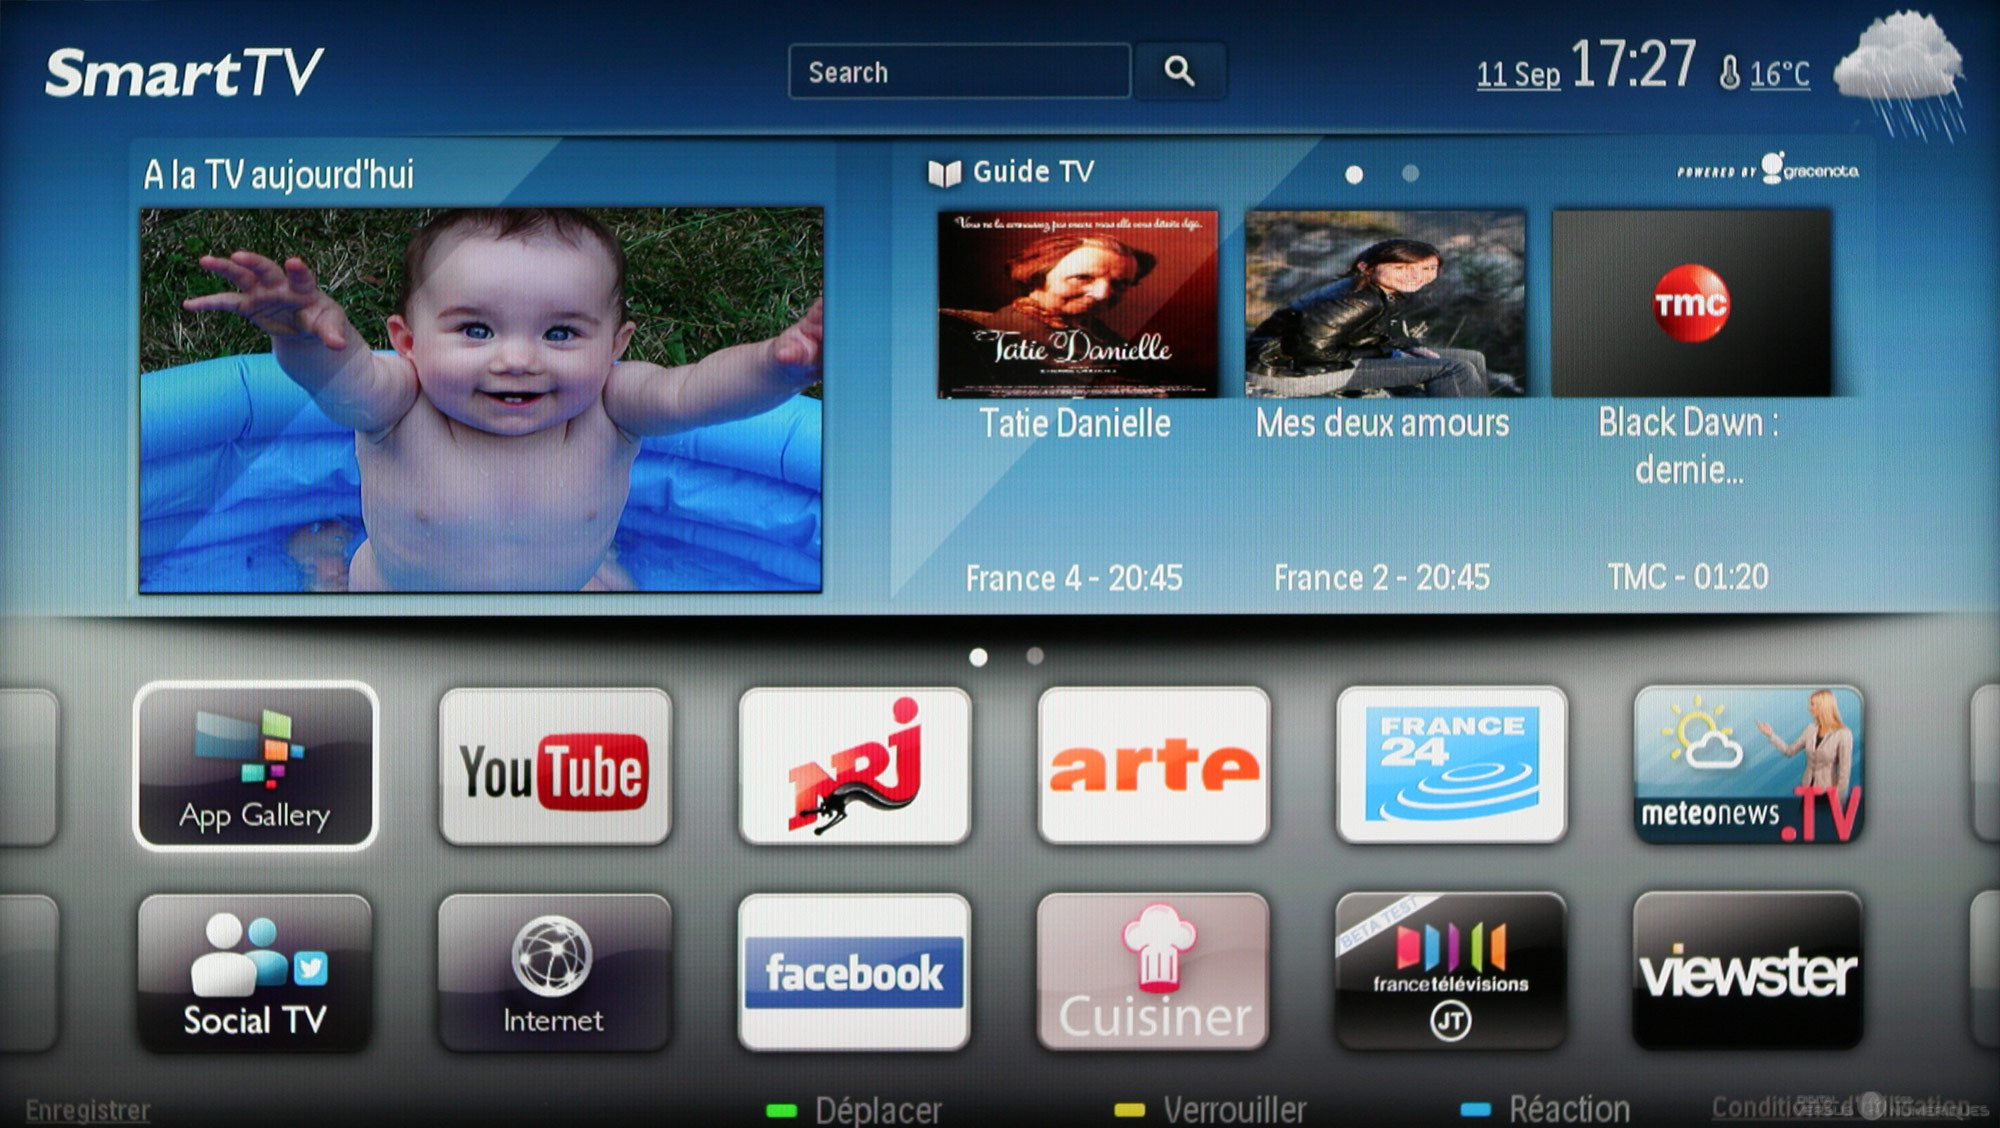 Philips-brand Television Set Maker TPV Turns to IBM Cloud